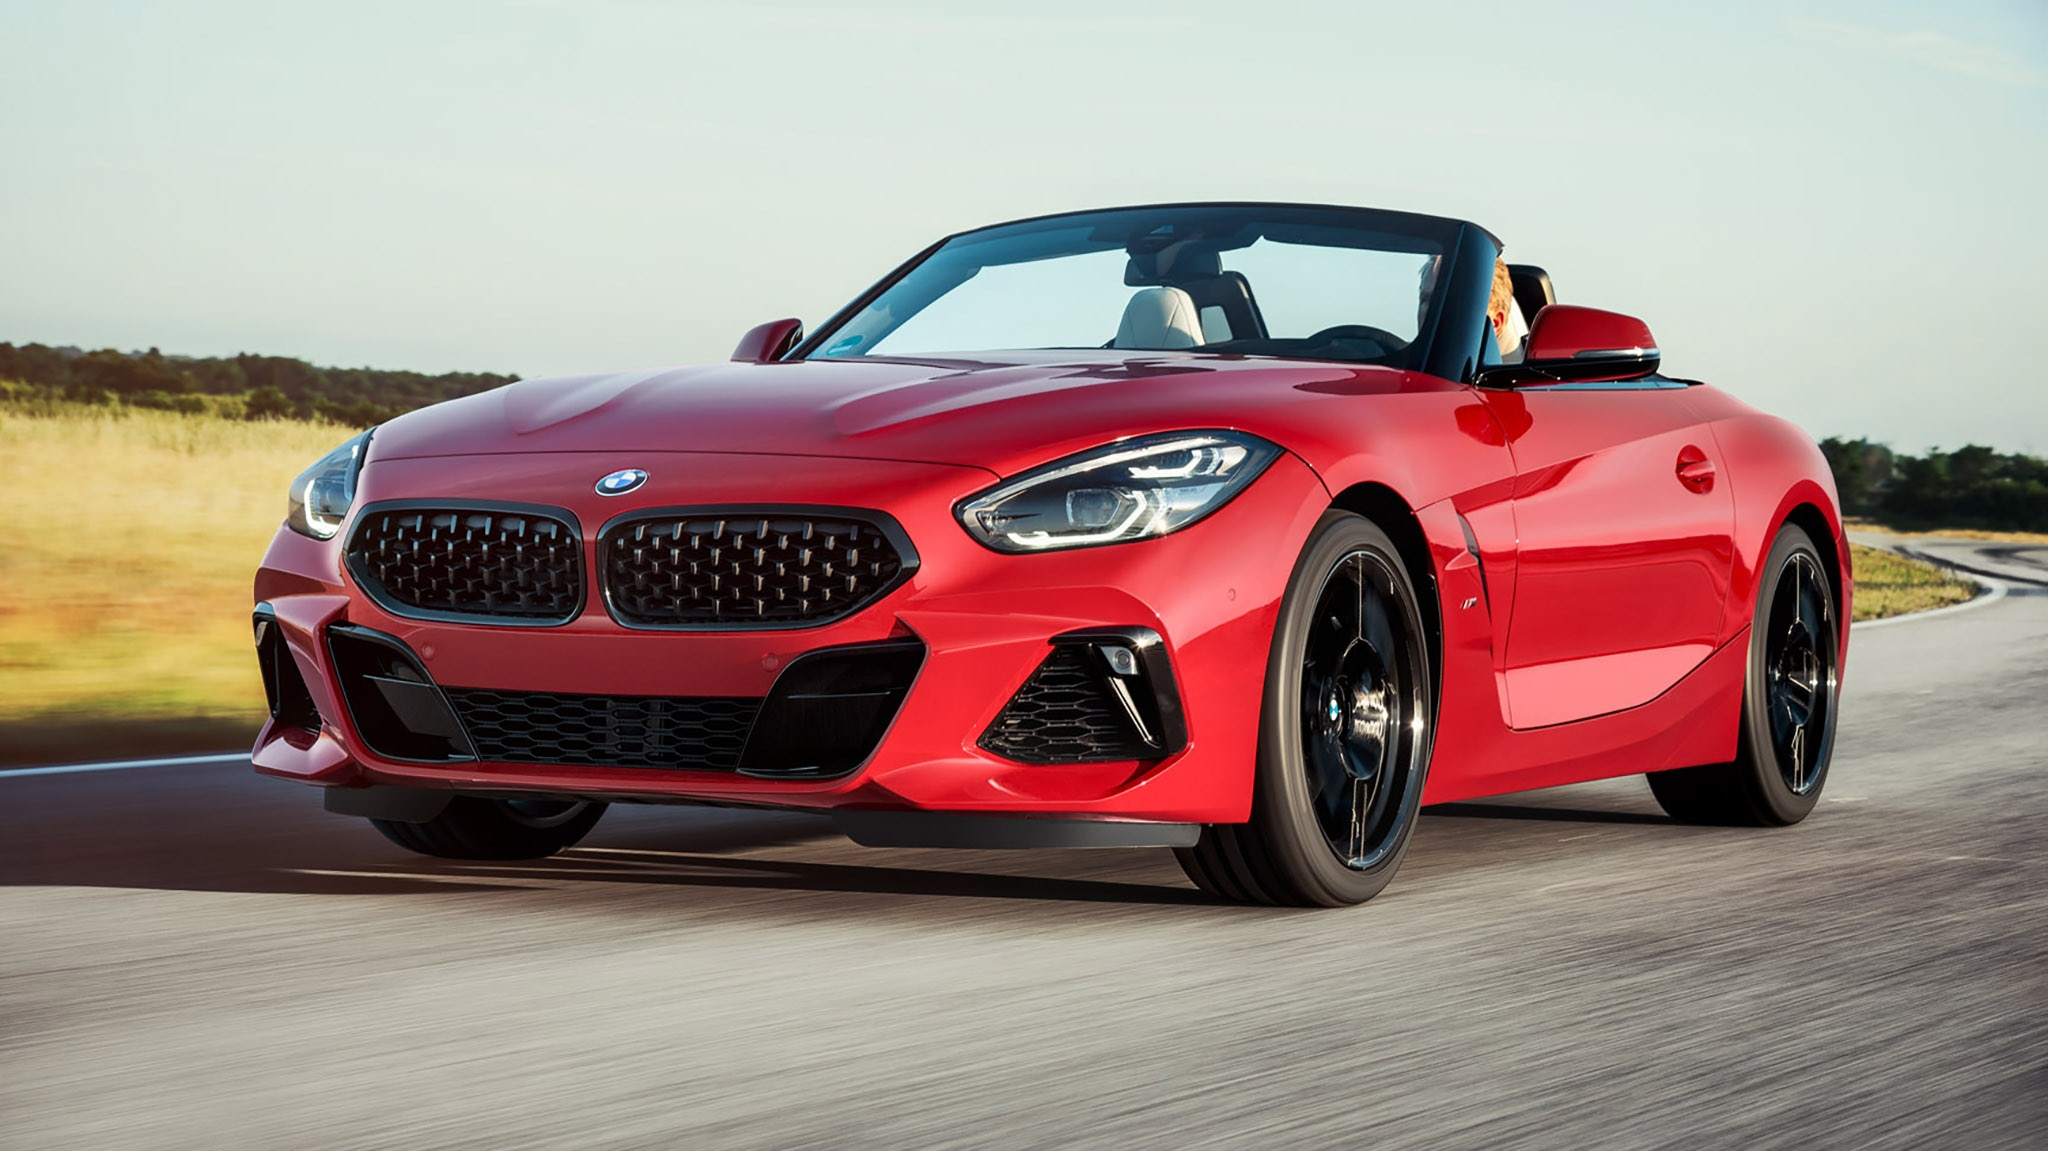 Stunning 2019 Bmw Z4 M40i First Edition Revealed At Pebble